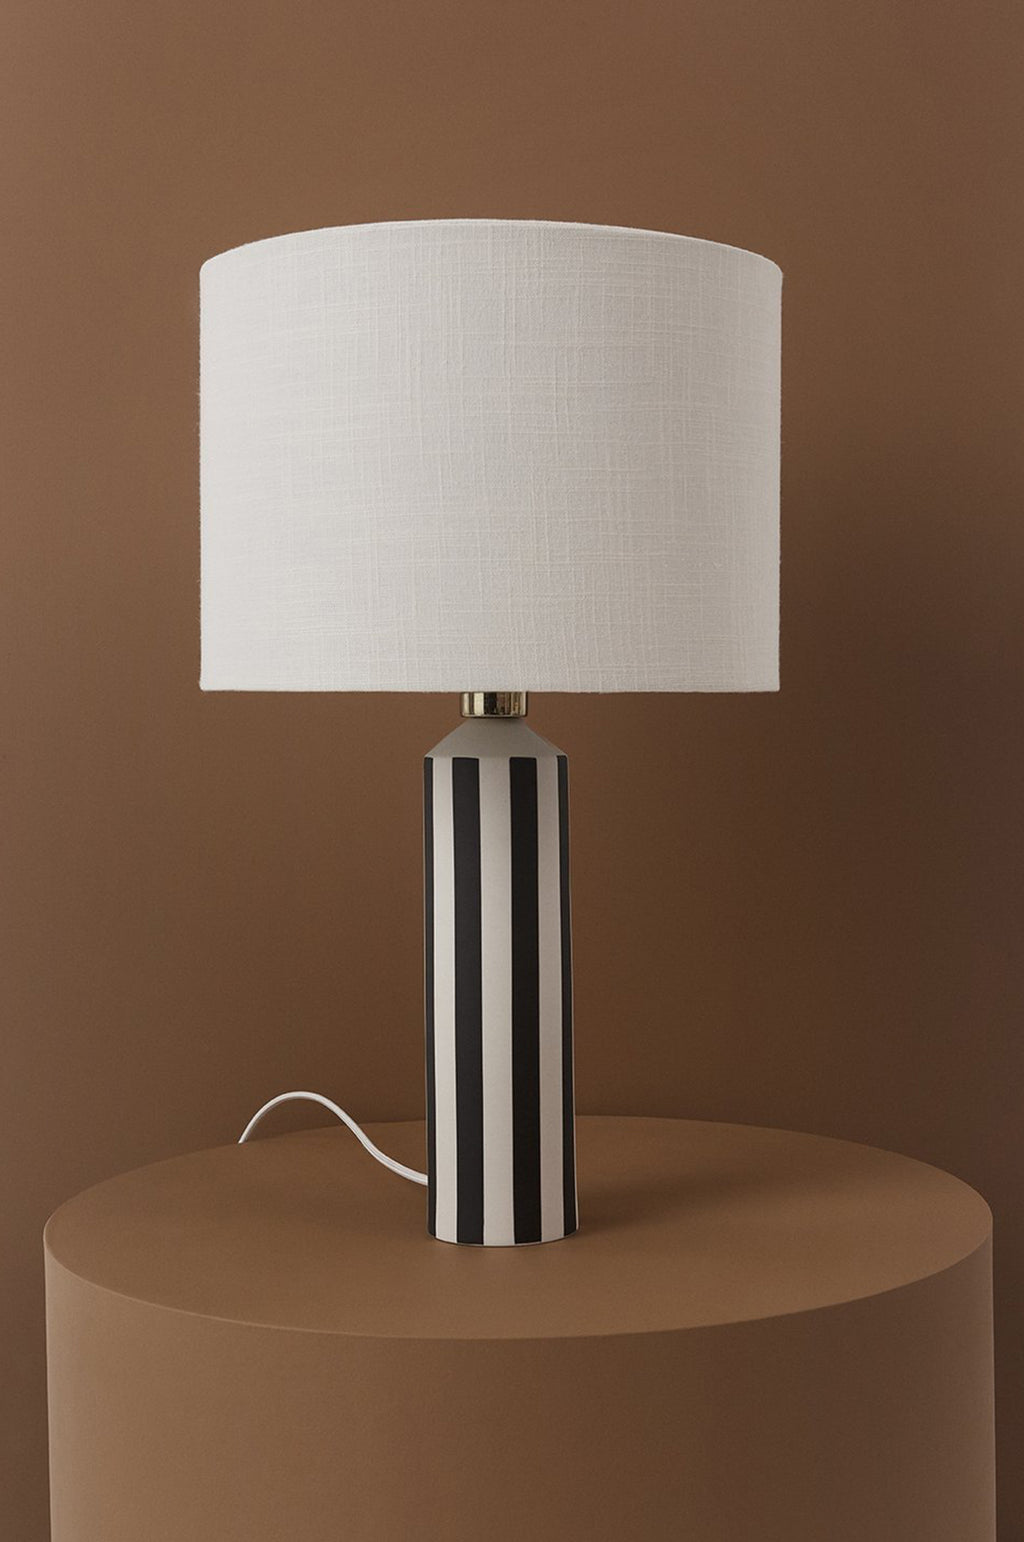 Toppu Lamp in Off White and Anthracite